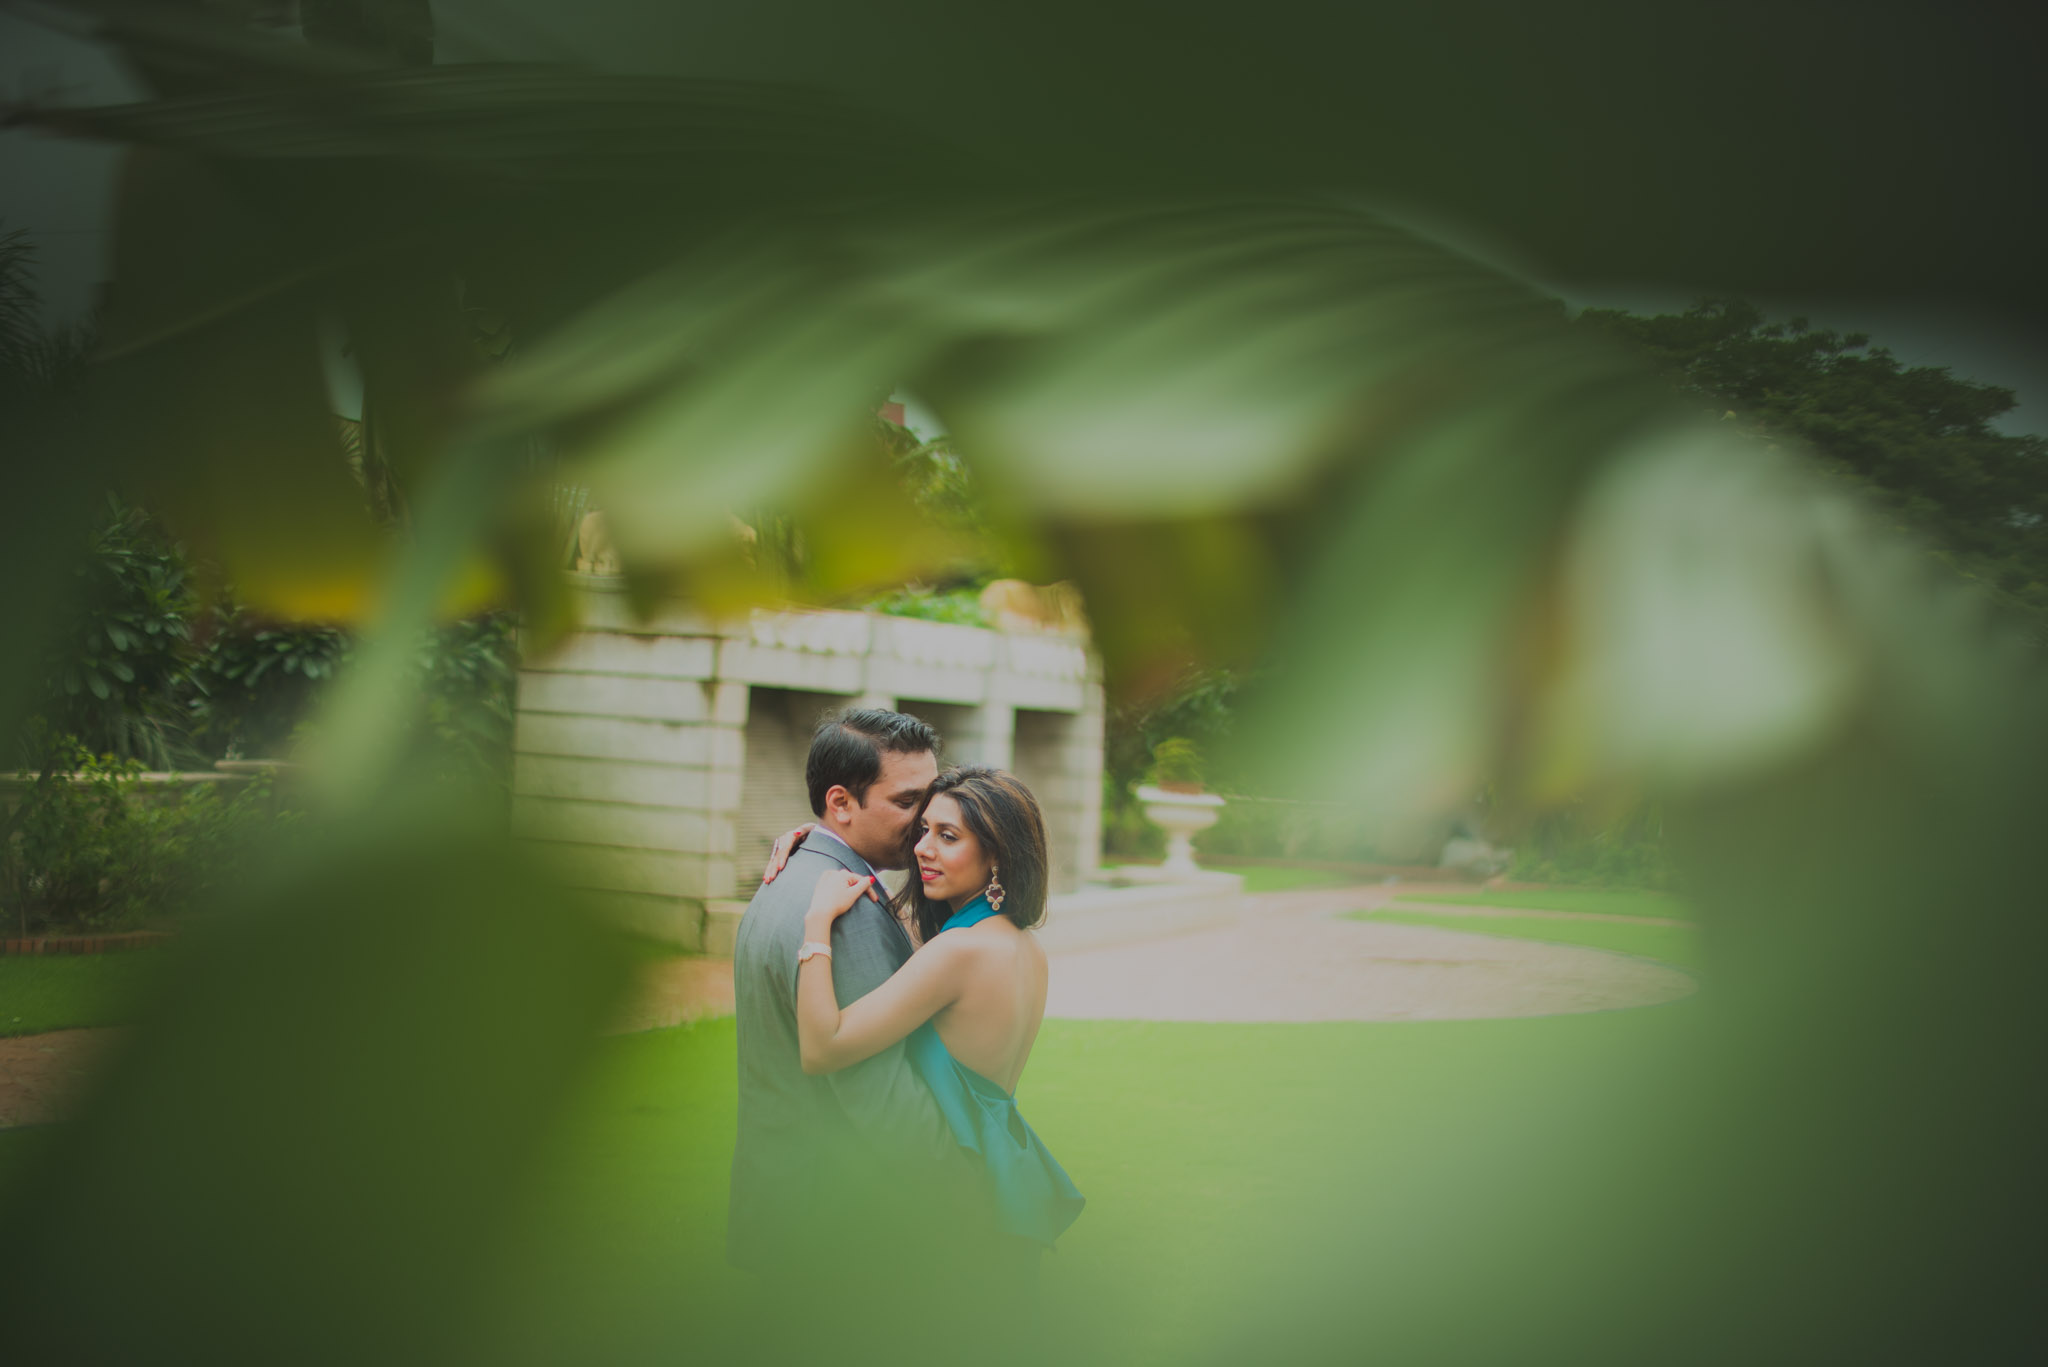 Monica-Shiv-Pre-Wedding-Mumbai-ITC-Parel-7